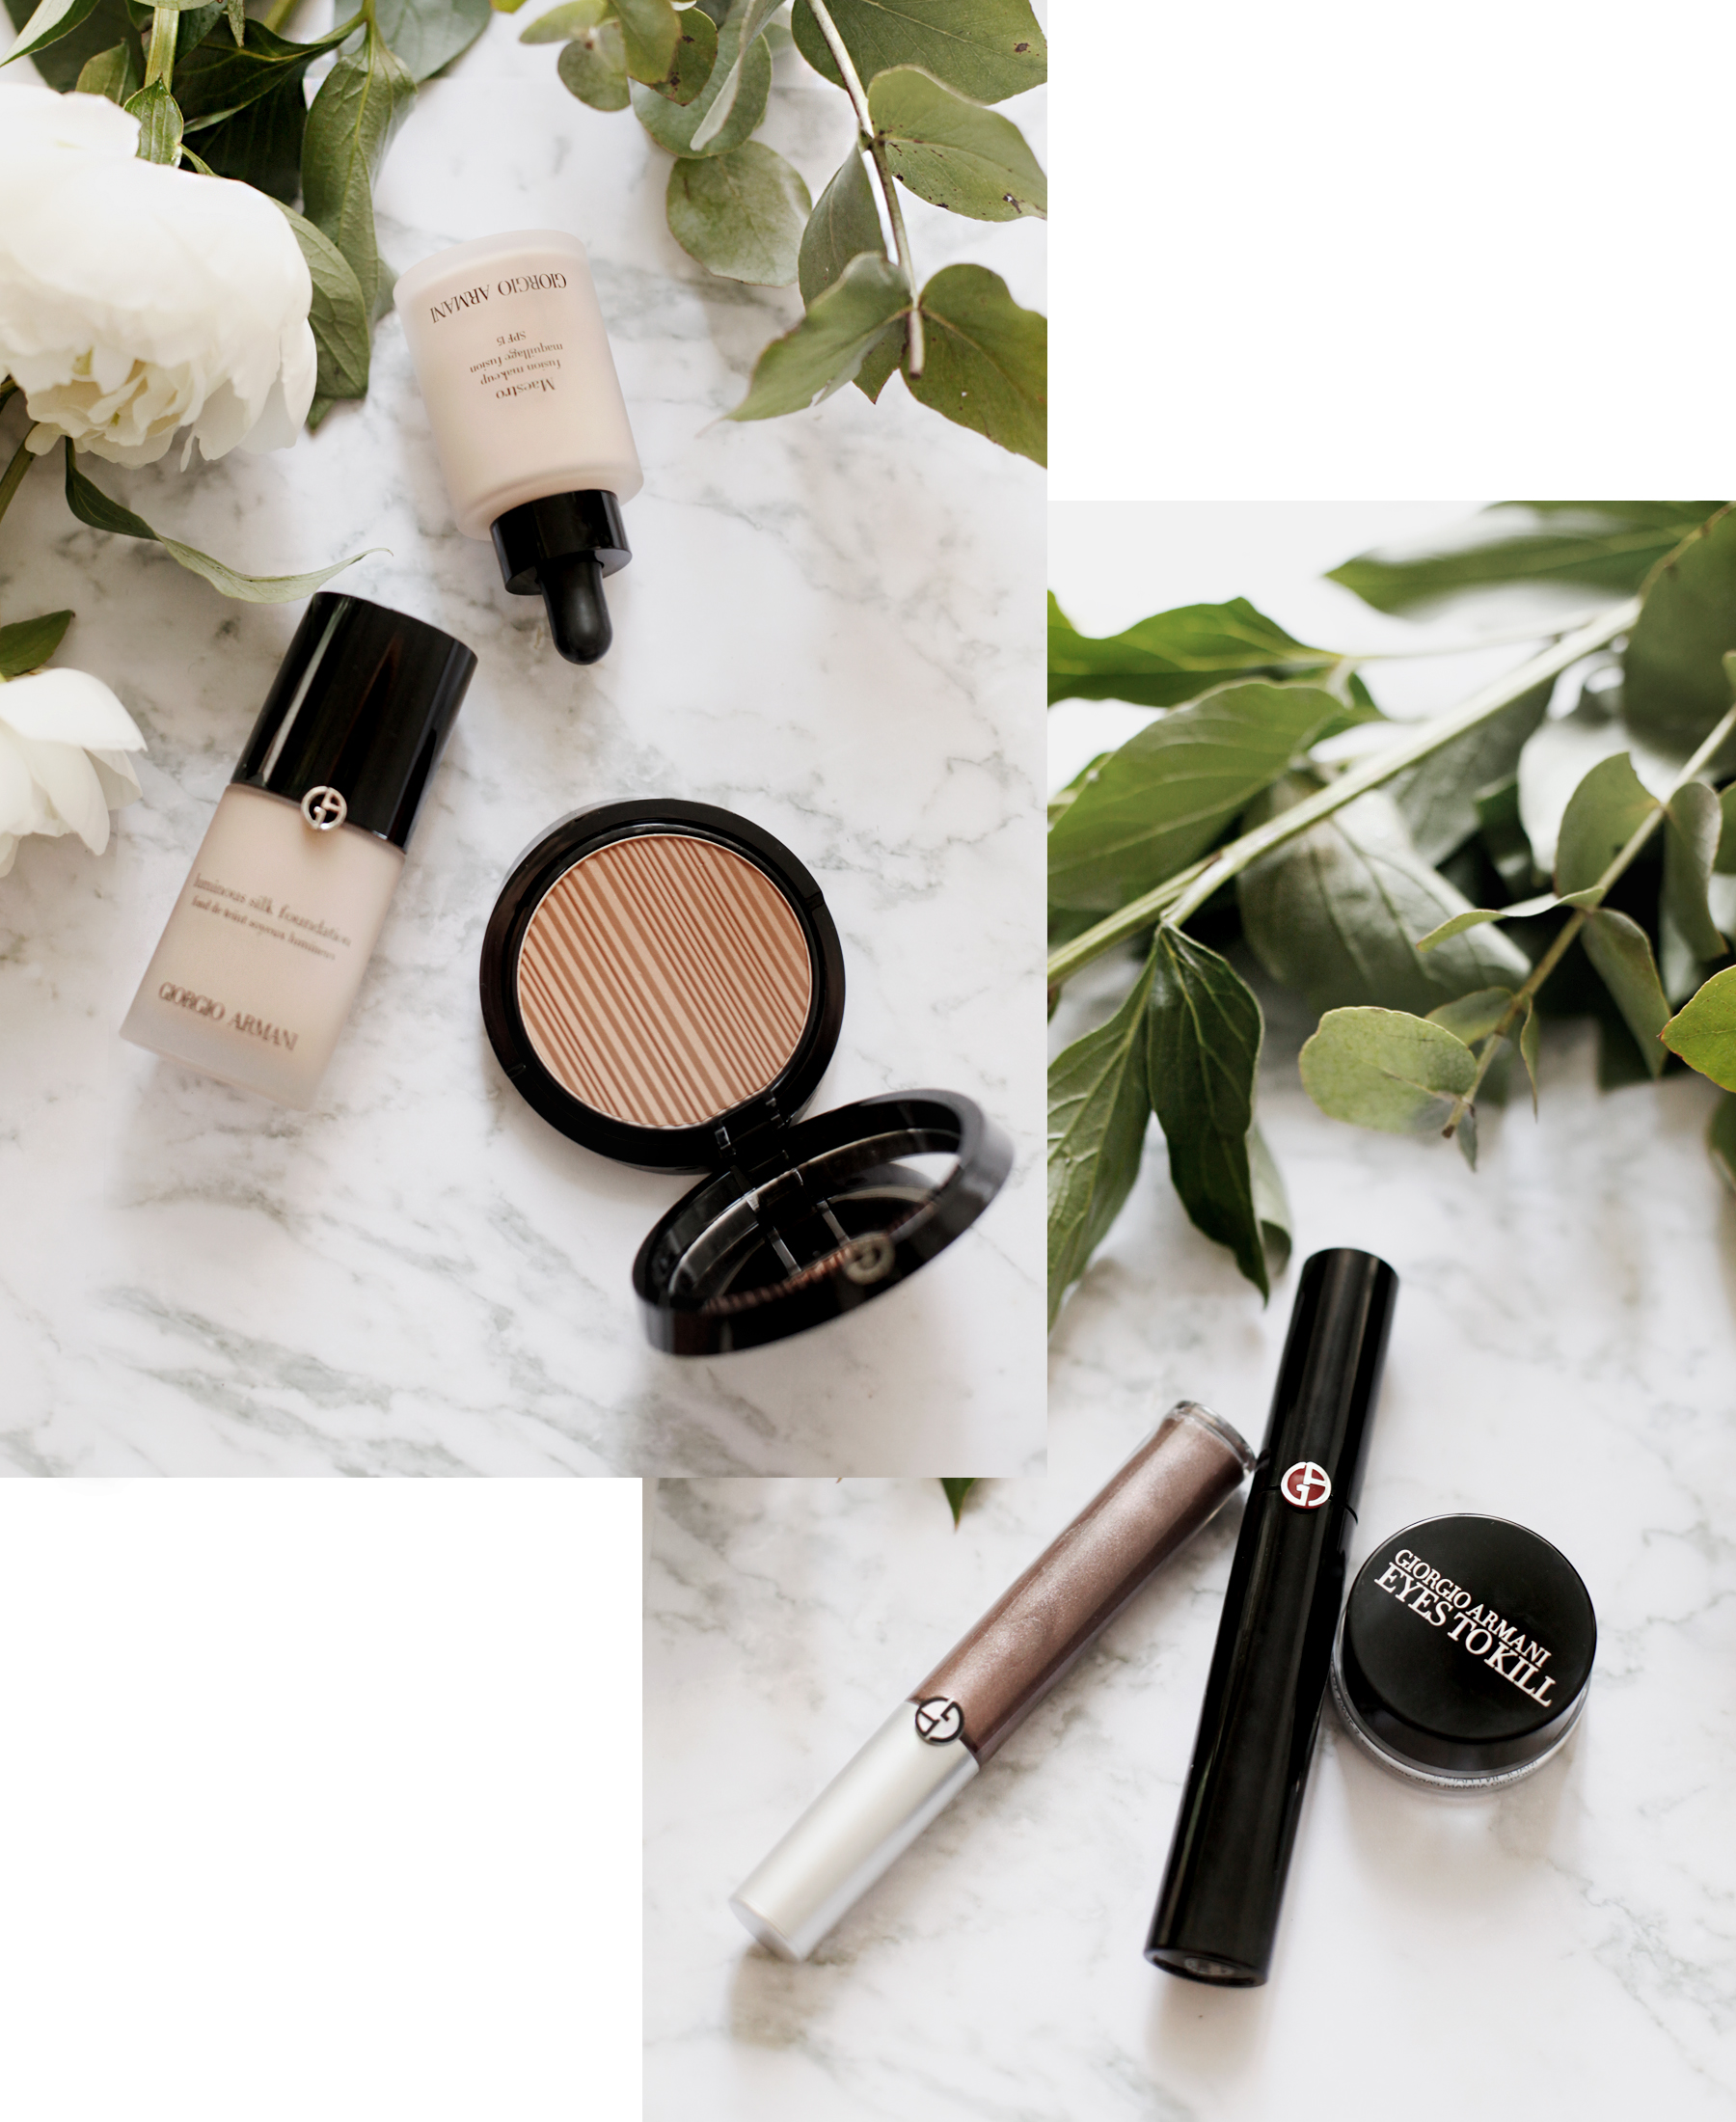 armani beauty makeup beauty beautyblogger bronzer red lipstick luxury products douglas mascara marble peony white flatlay cats & dogs beautyblog ricarda schernus schminke bloggerin 2